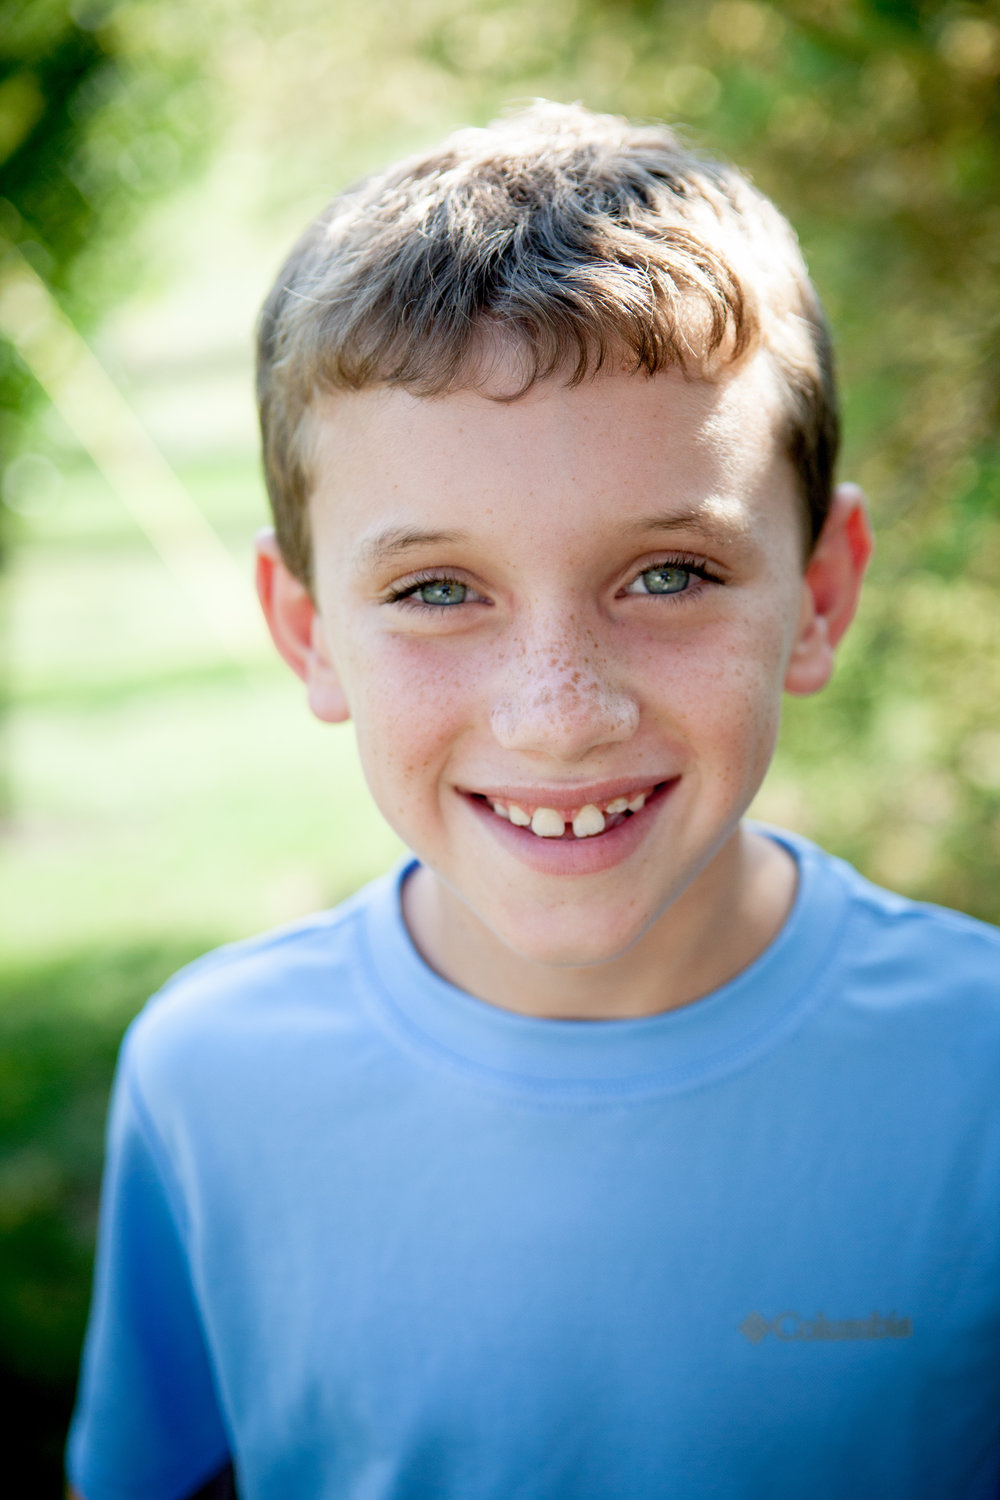 lumina_traditions_school_portraits_maine_nh_0007.jpg